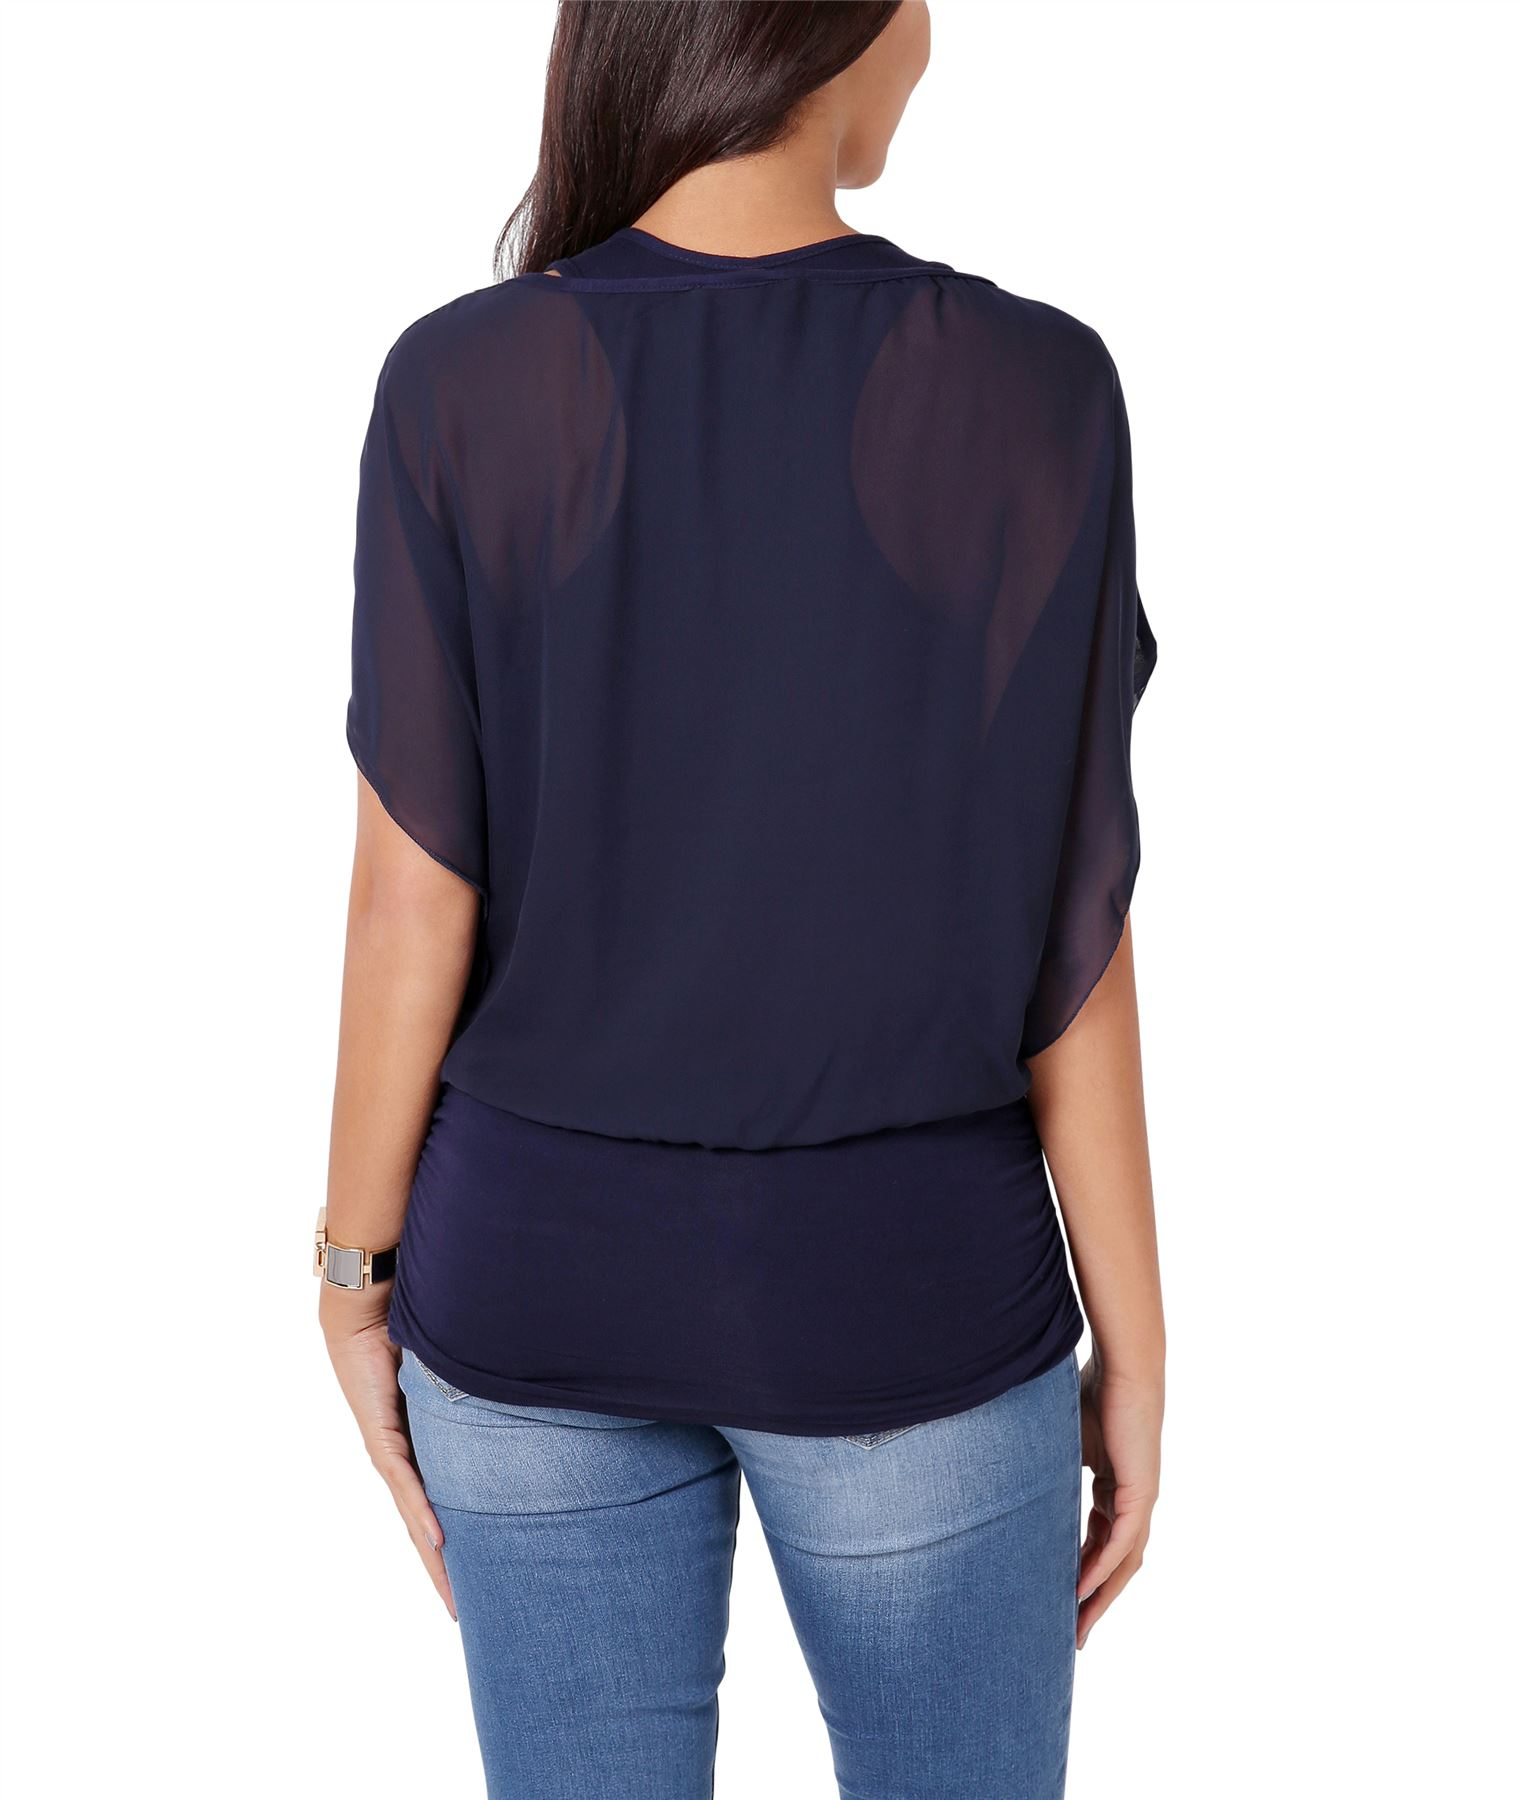 Womens-Scoop-Neck-Blouse-Baggy-Batwing-T-Shirt-Top-Ladies-Oversized-Chiffon-2in1 thumbnail 21